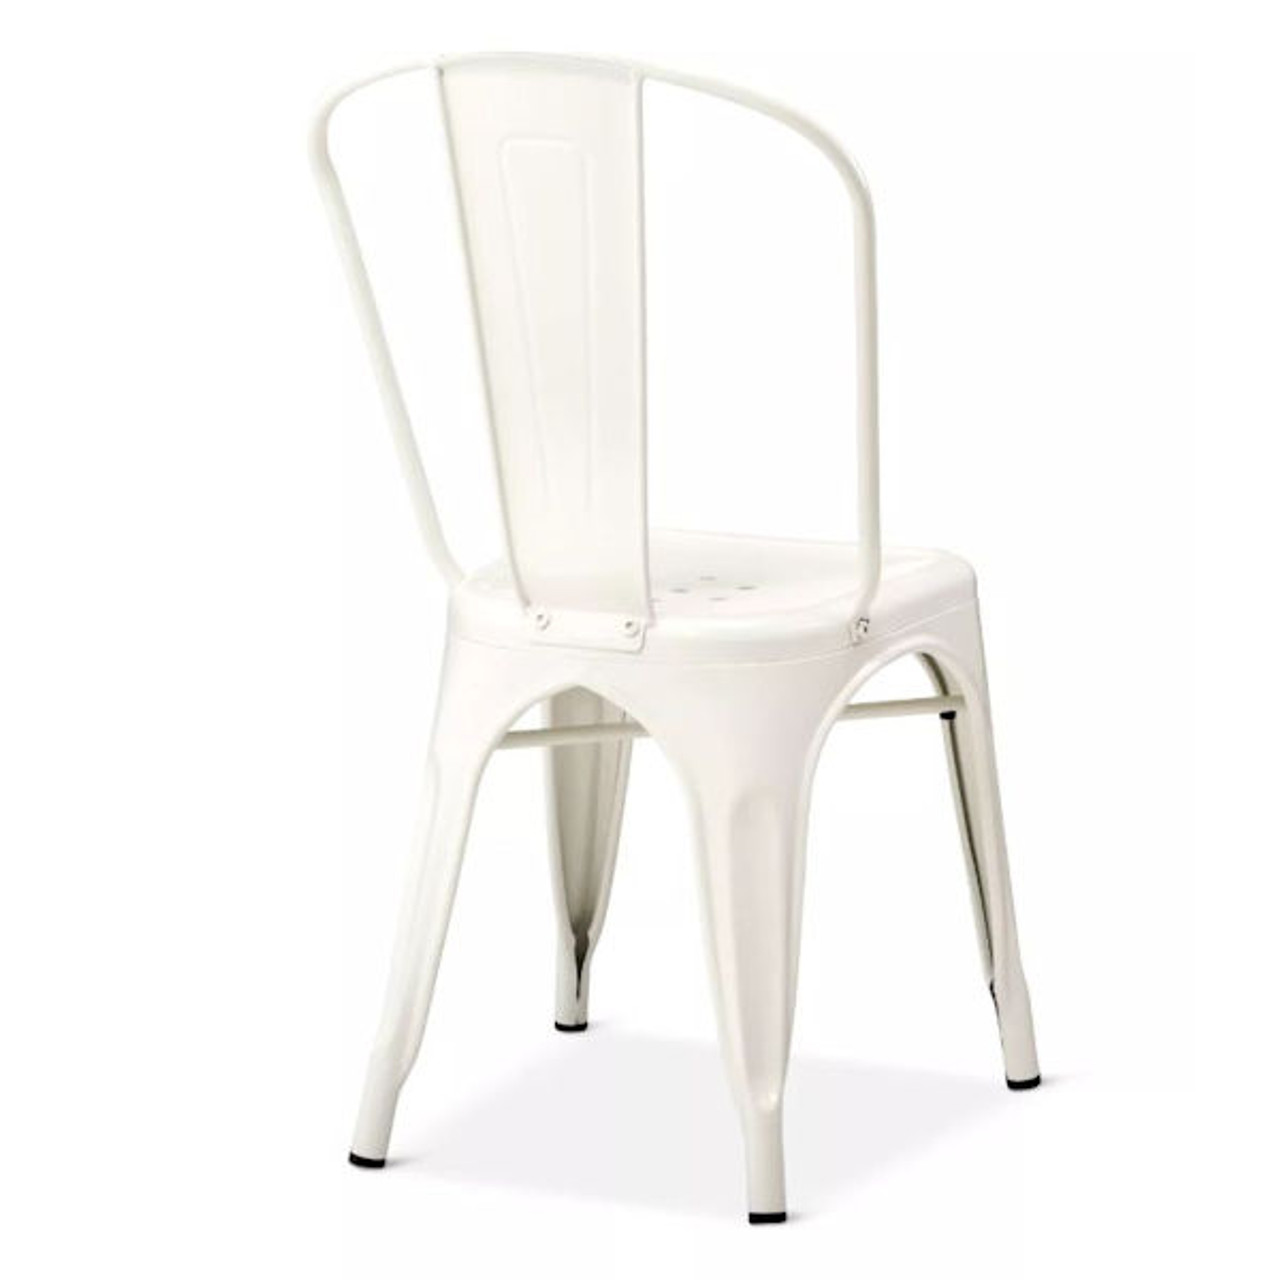 Carlisle High Back Dining Chair in White - Set of 2